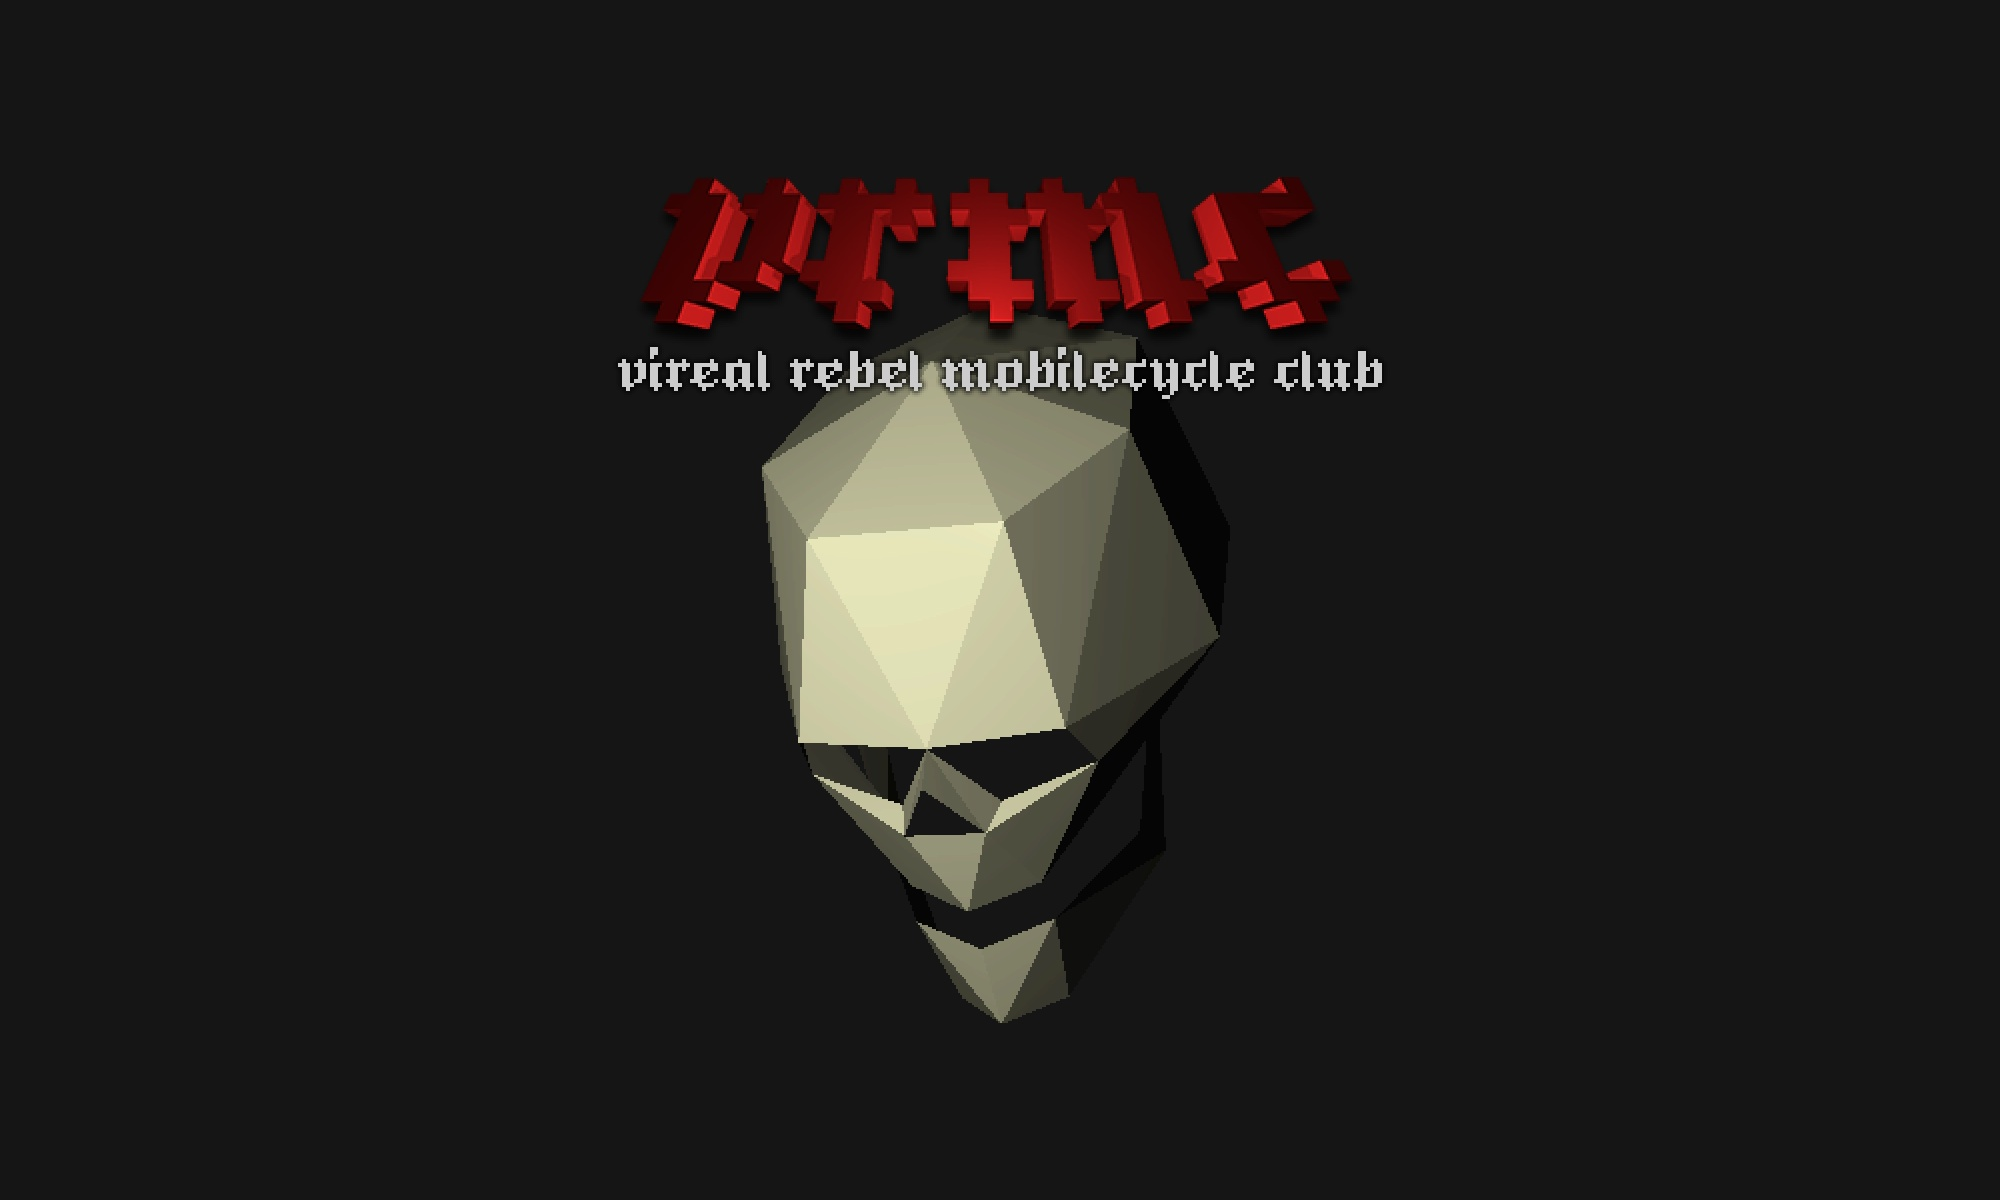 VRMC - Beta - Vireal Rebel Mobilecycle Club / Urania / 22.09, 15:00